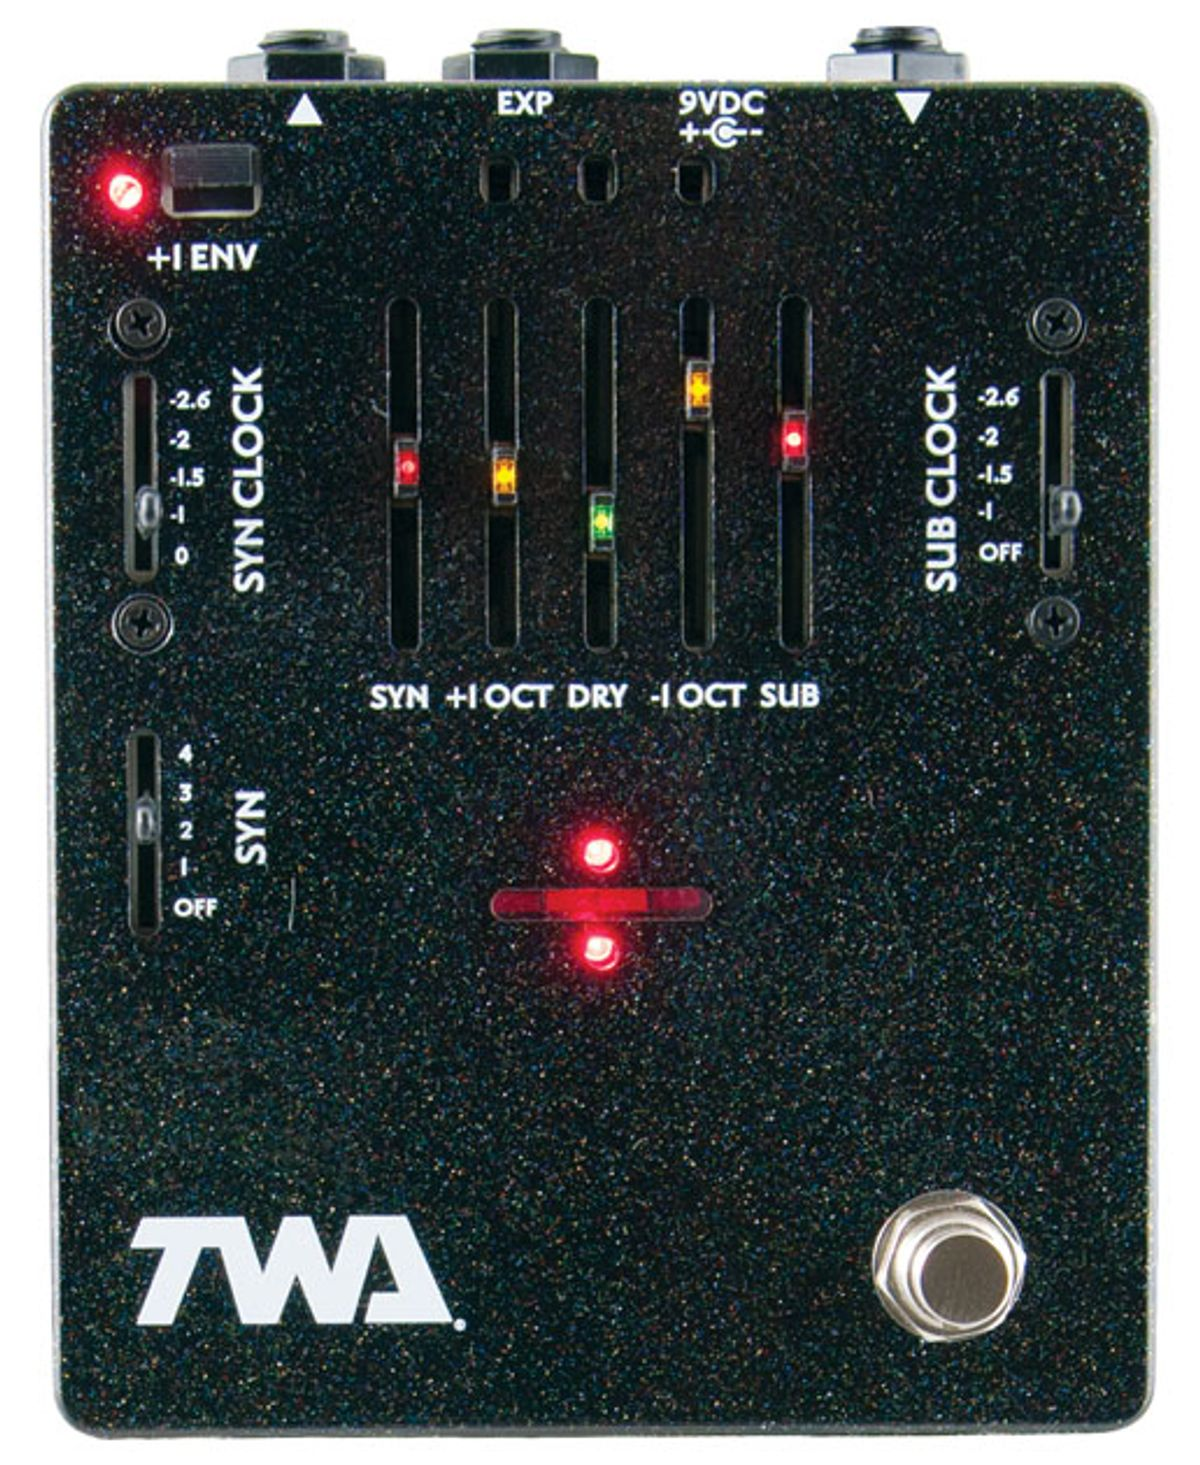 TWA Great Divide 2.0 Analog Synth Octaver Review